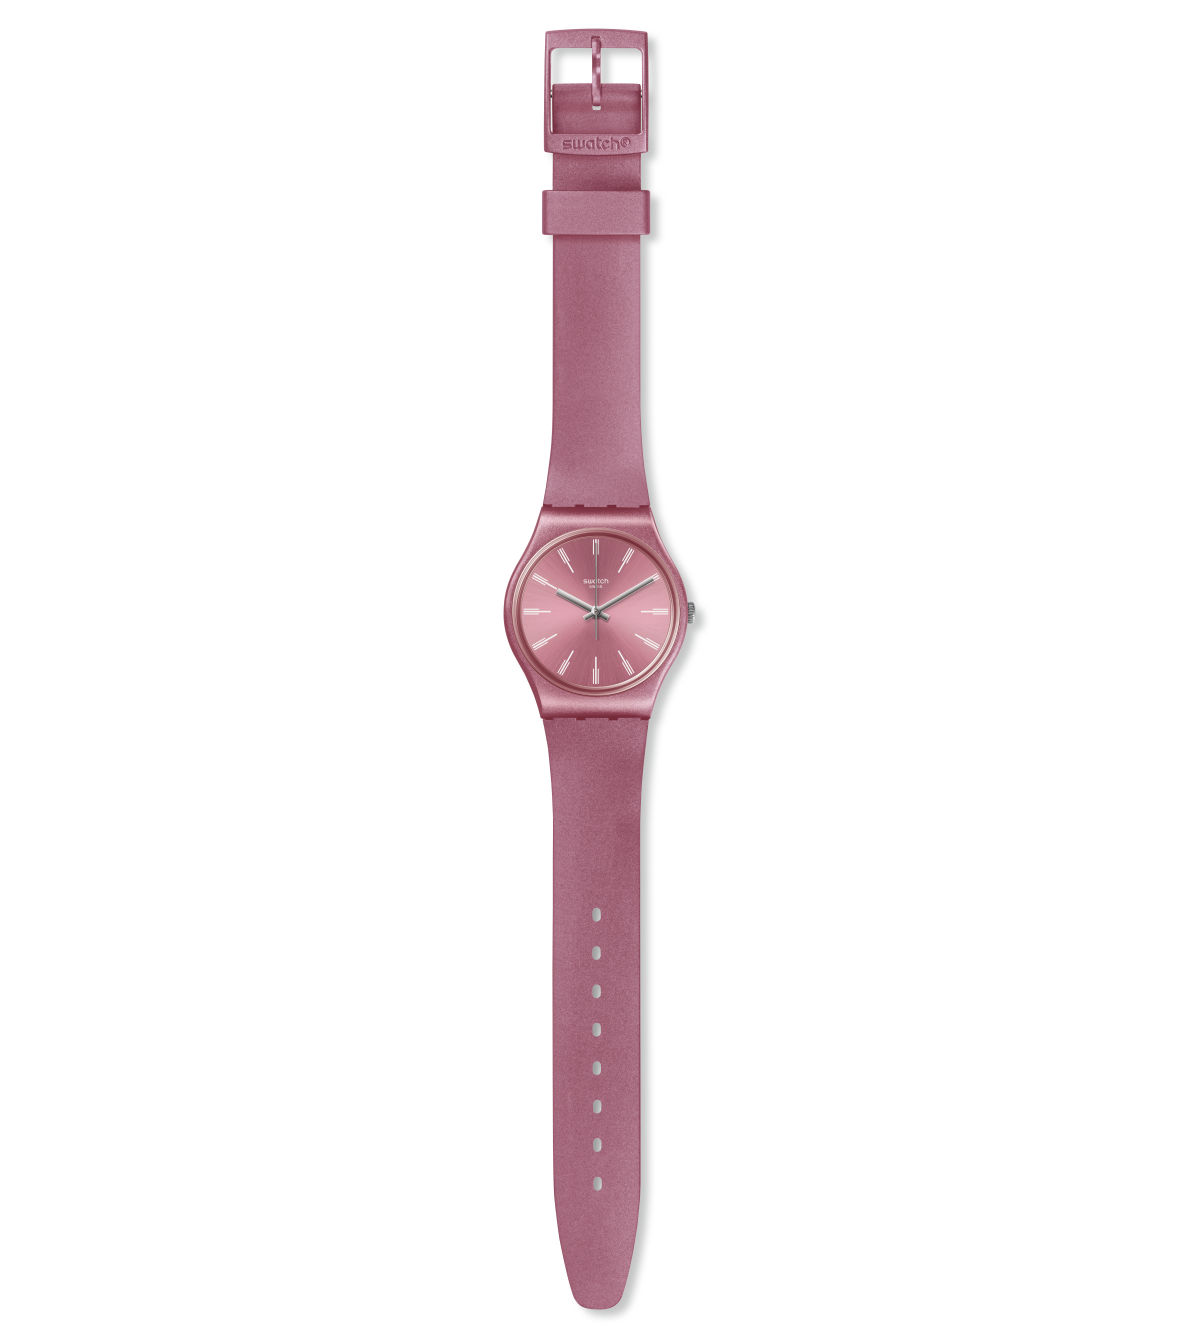 Reloj swatch mujer flores